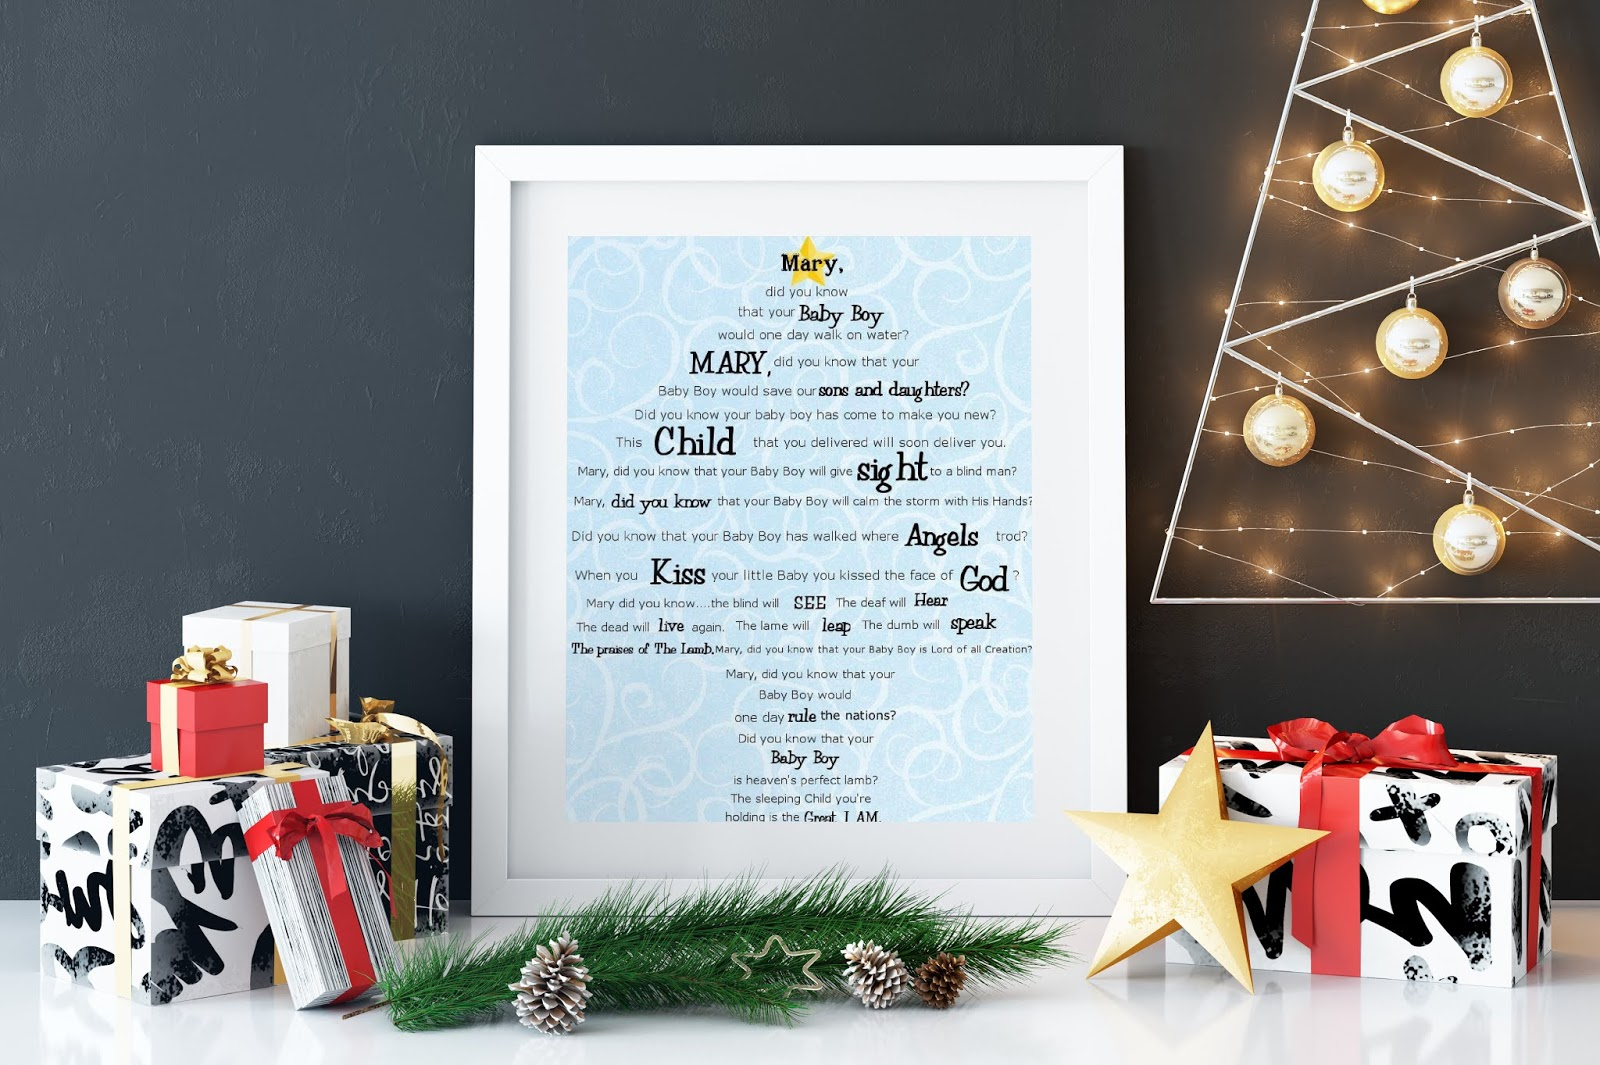 simple free printable christmas signs with the lyrics for mary did you know the beautiful